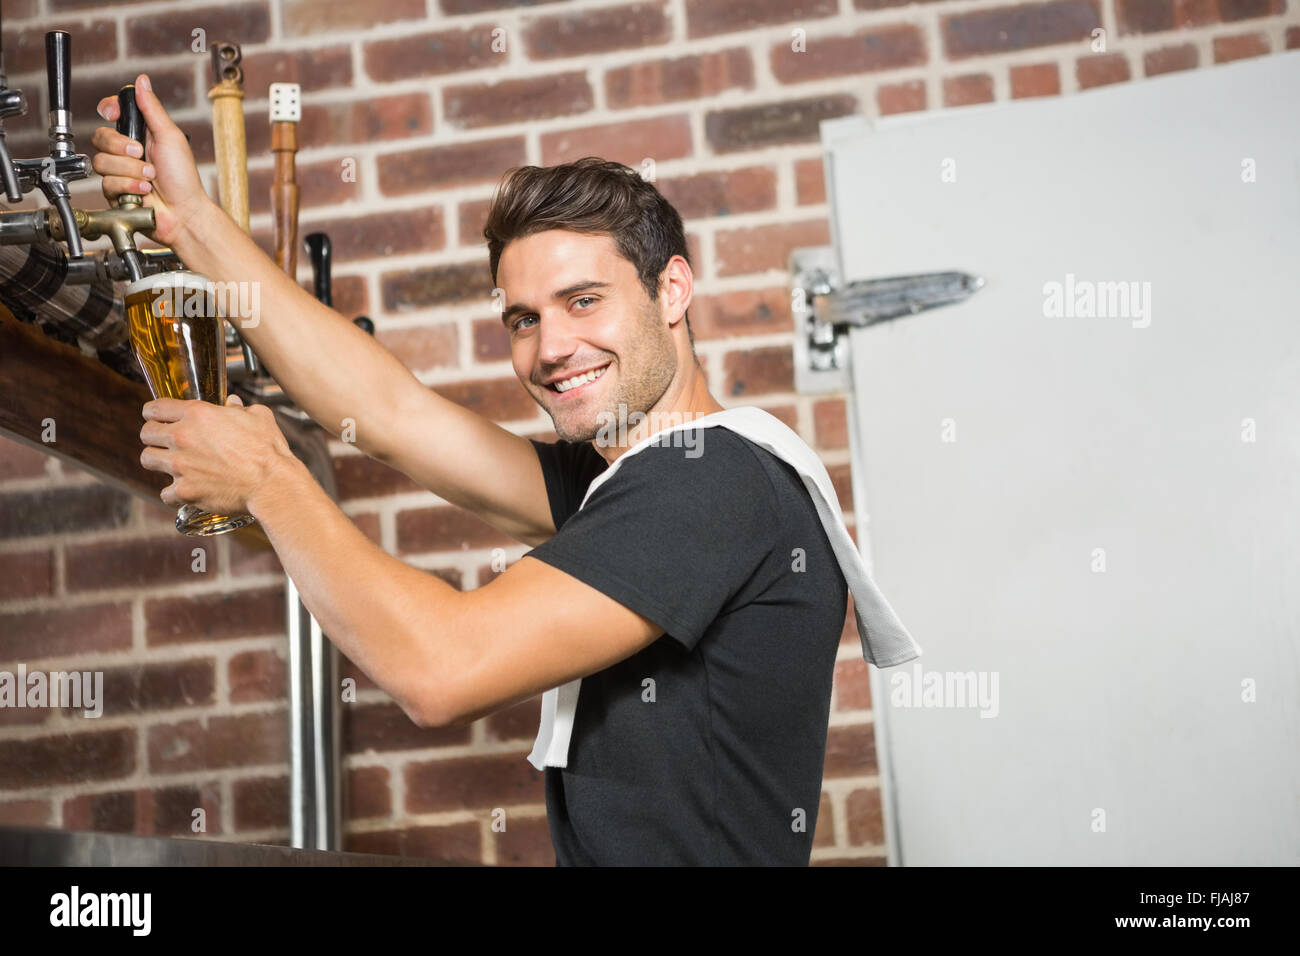 Handsome barman pouring a pint of beer - Stock Image